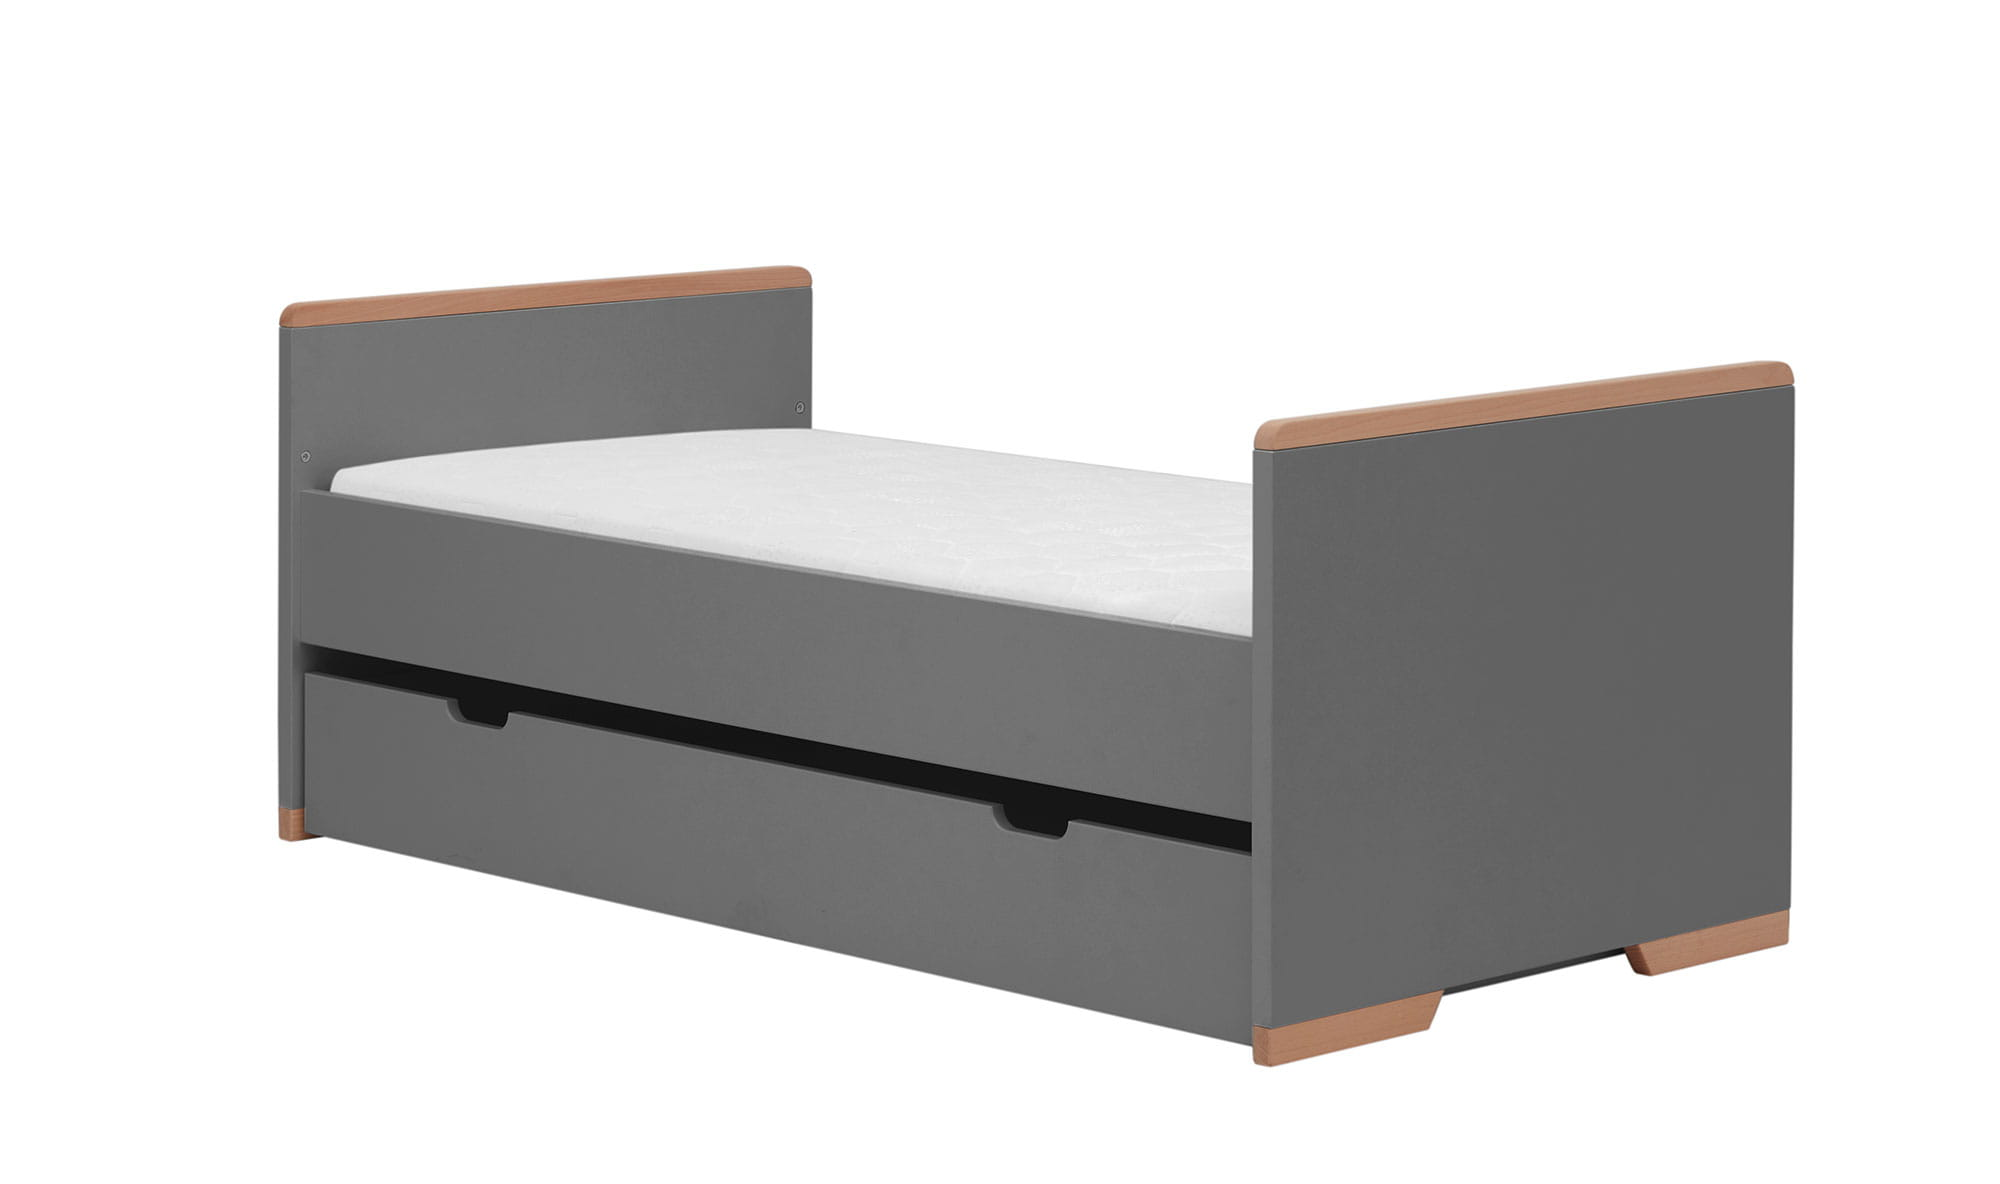 Snap_cot-bed140x70_dark_grey_6.jpg